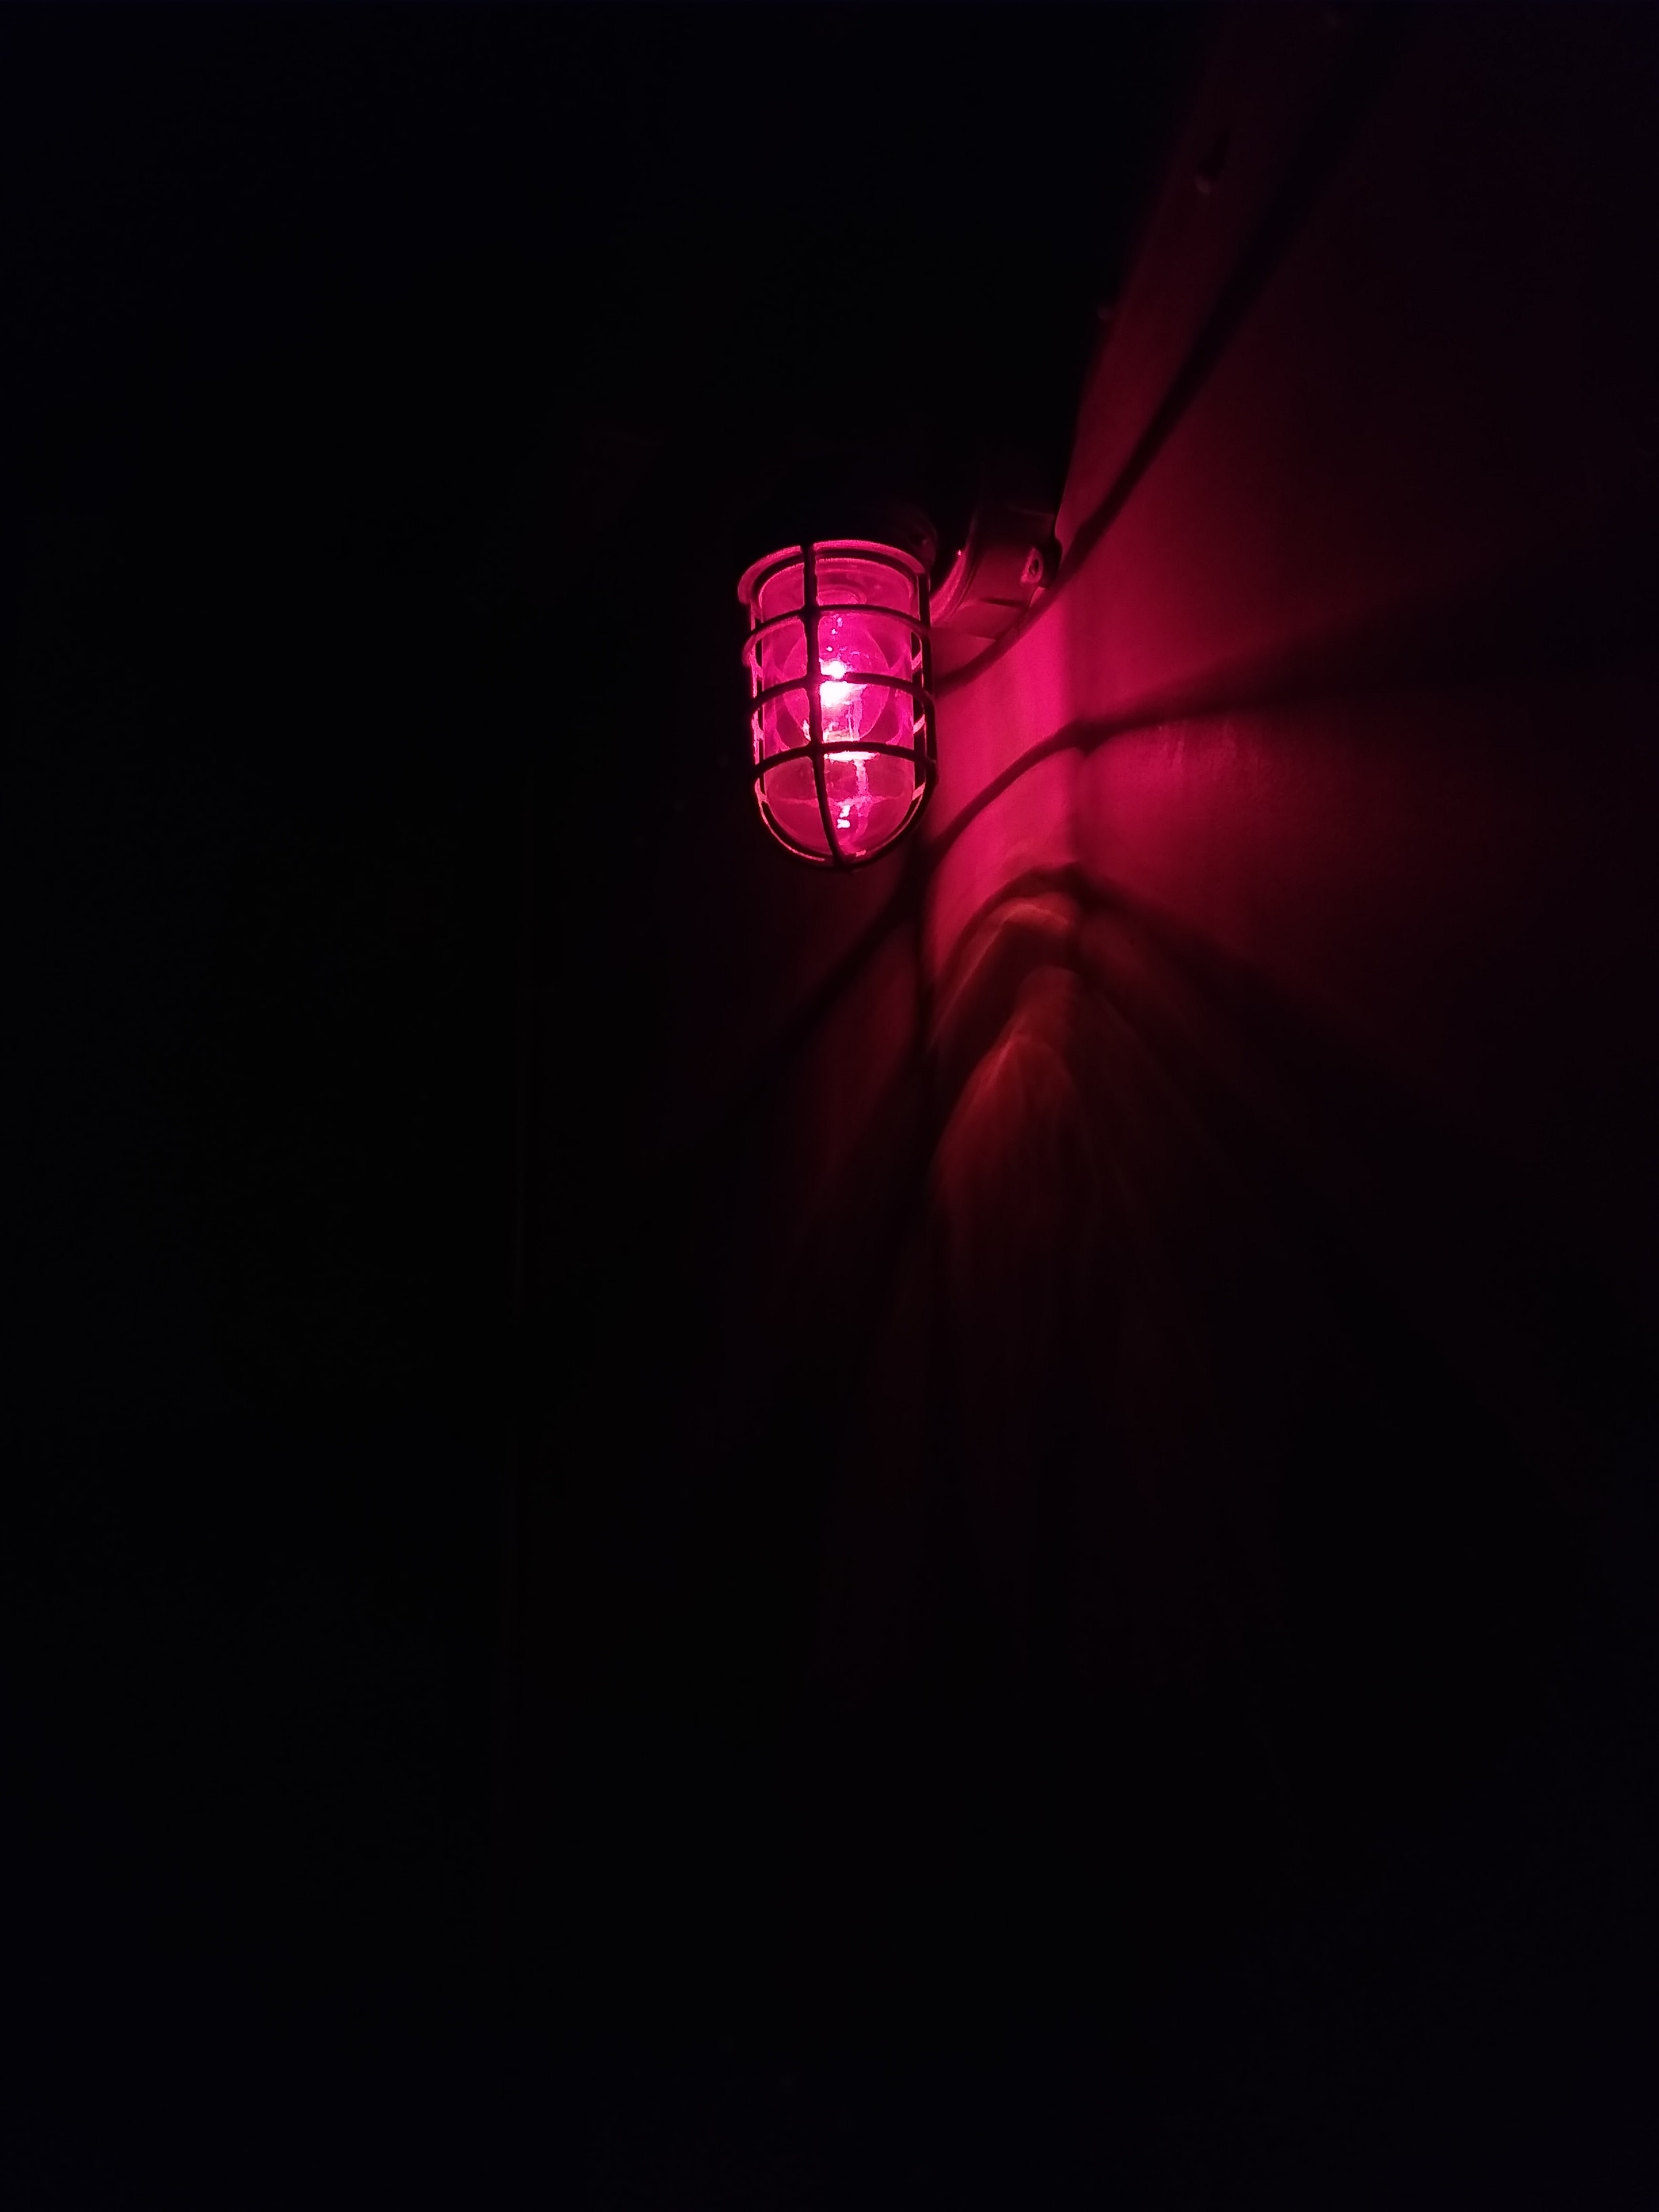 red light bulb on wall